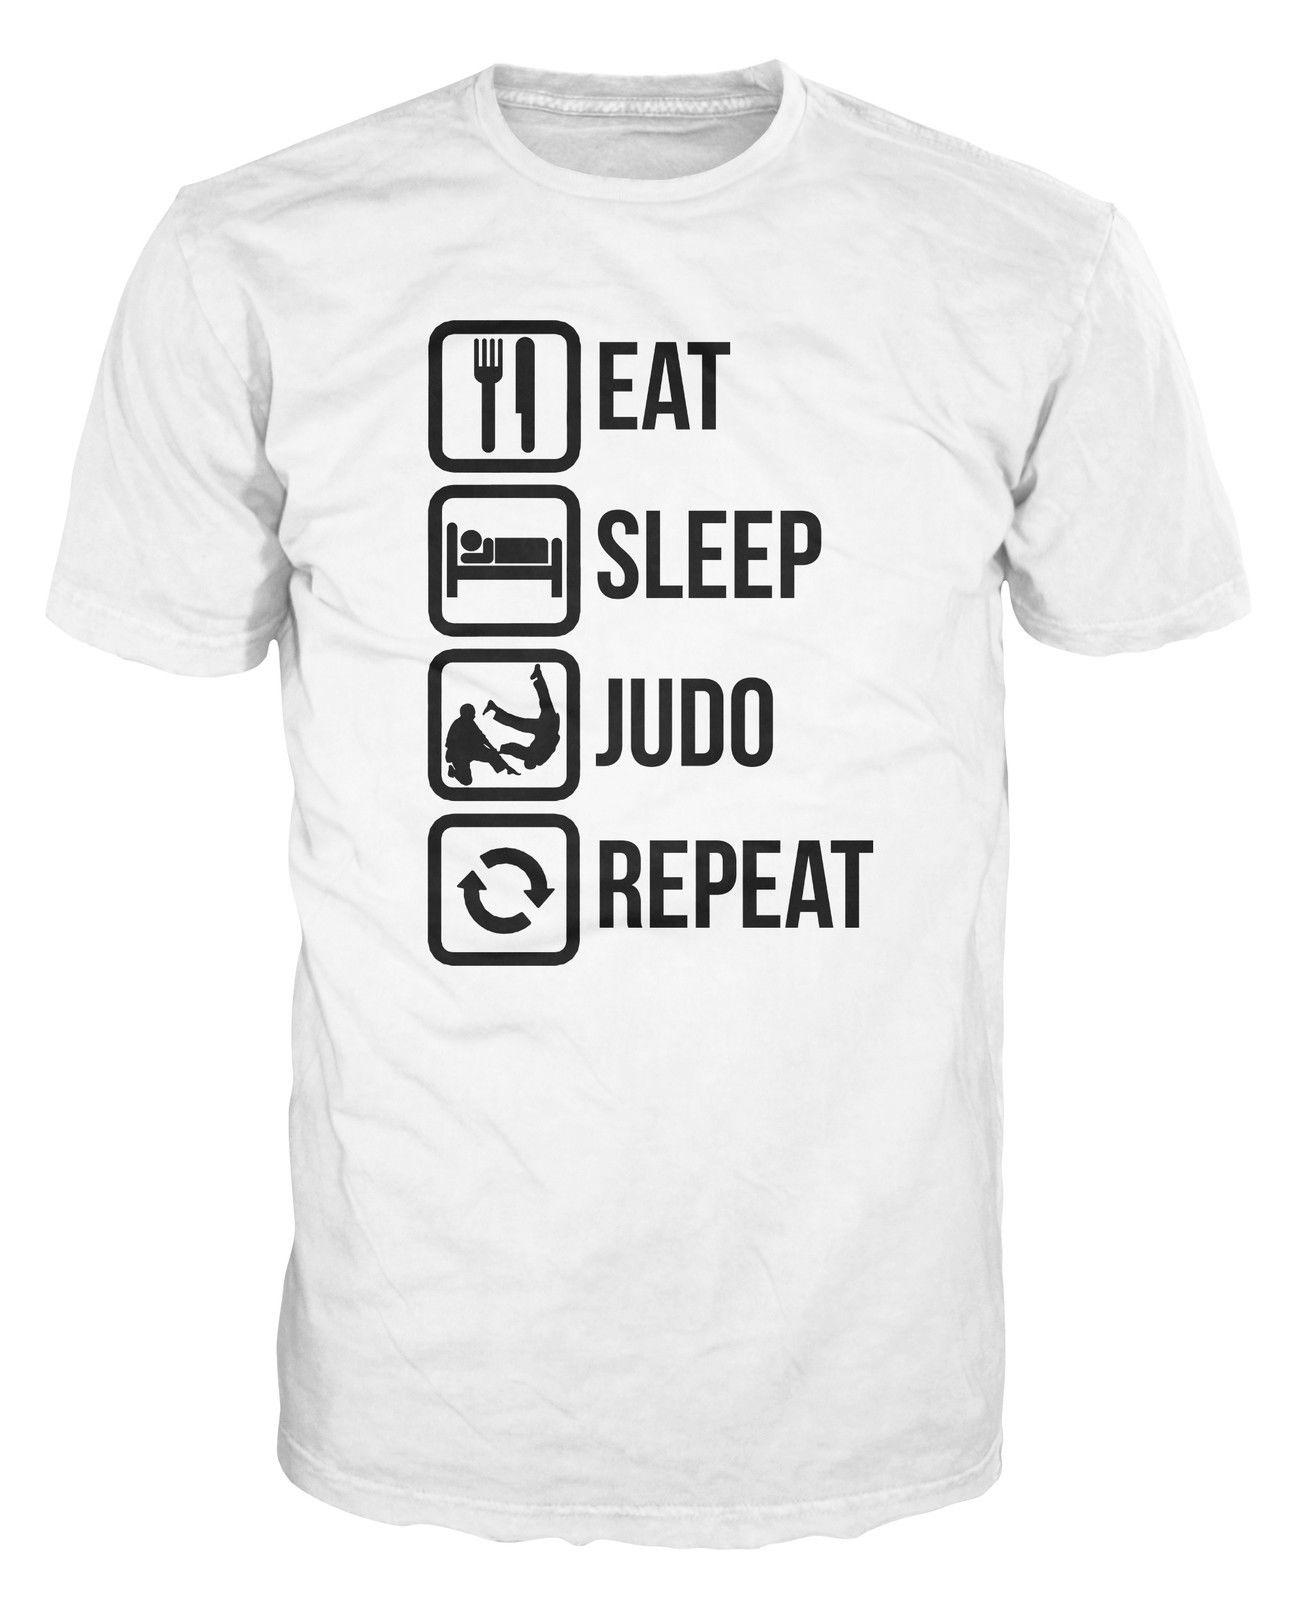 8022dcb8 Eat Sleep Judo Repeat Funny Martial Art MMA T Shirt Funny Unisex Casual Tee  Gift Top Mens Shirt Printed Shirts From Revolvertees, $12.96| DHgate.Com